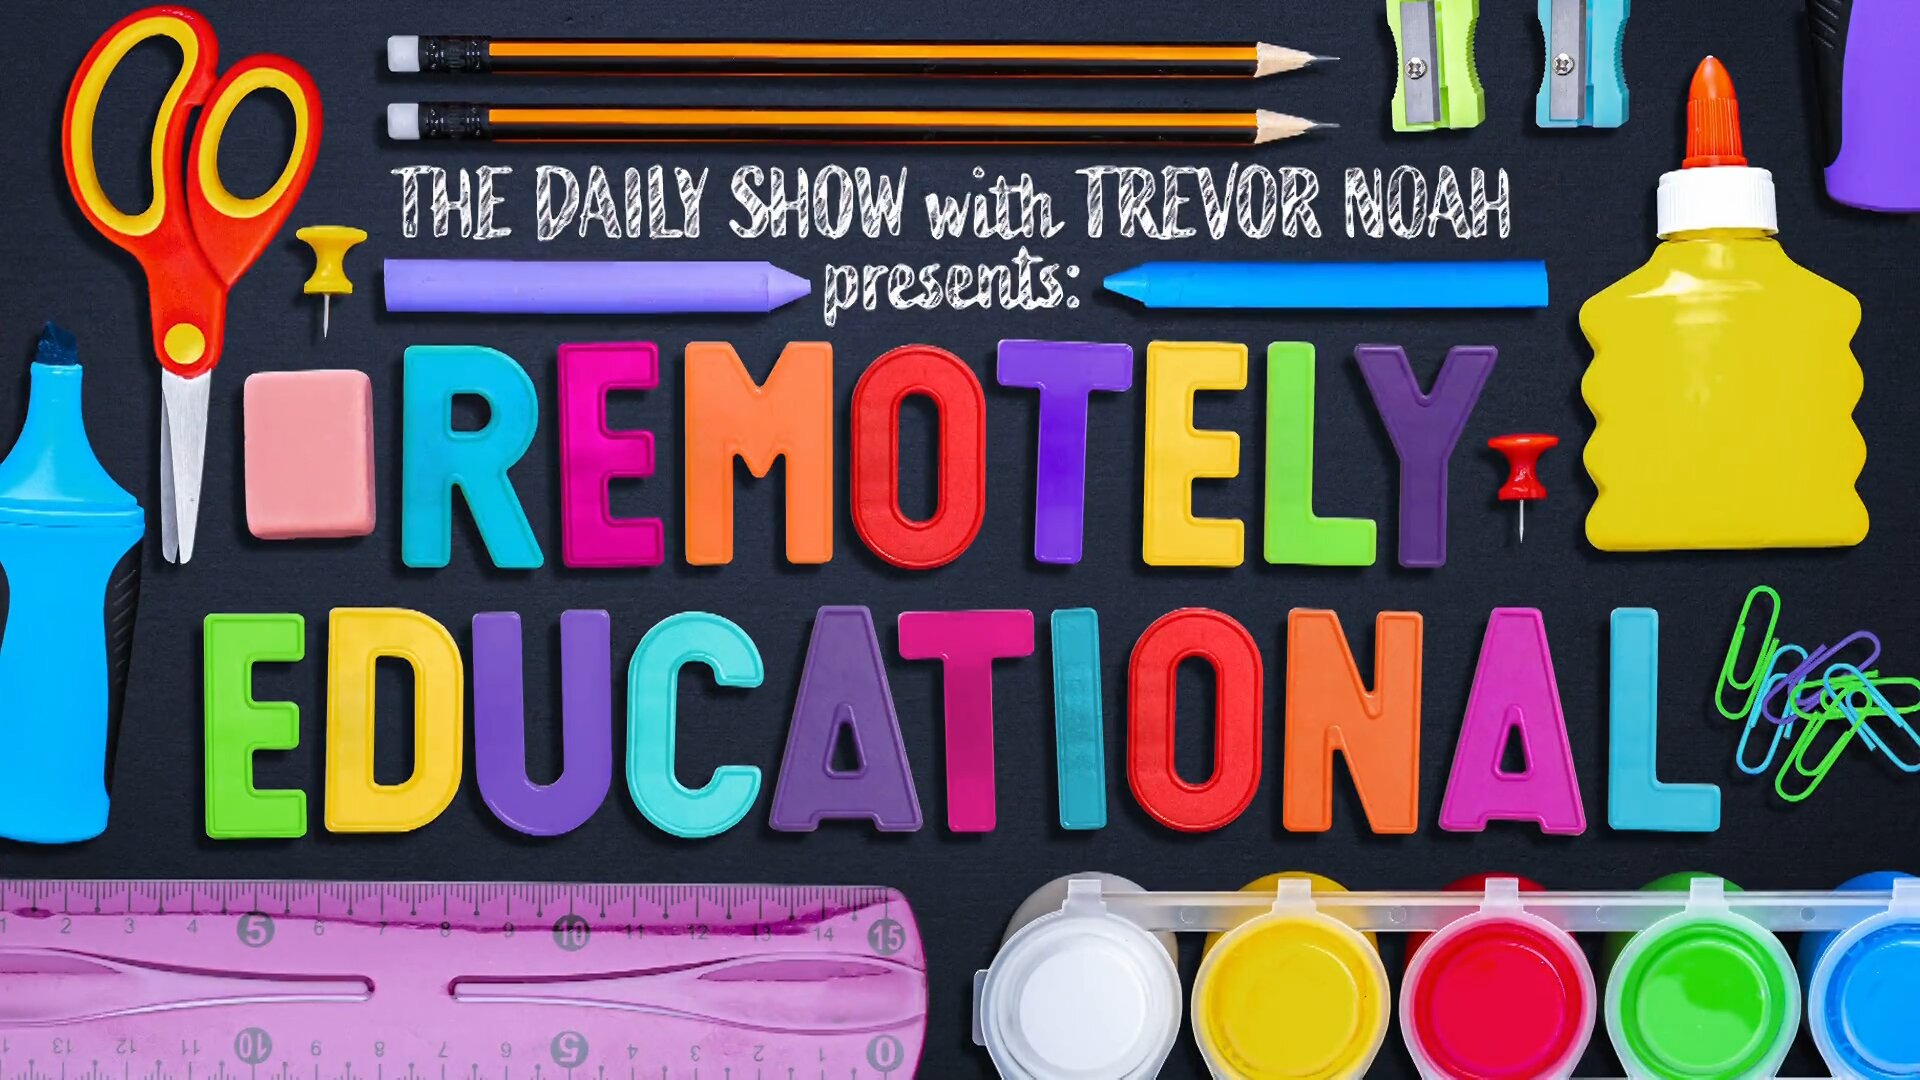 The Daily Show with Trevor Noah — s2021 special-1 — The Daily Show With Trevor Noah Presents Remotely Educational